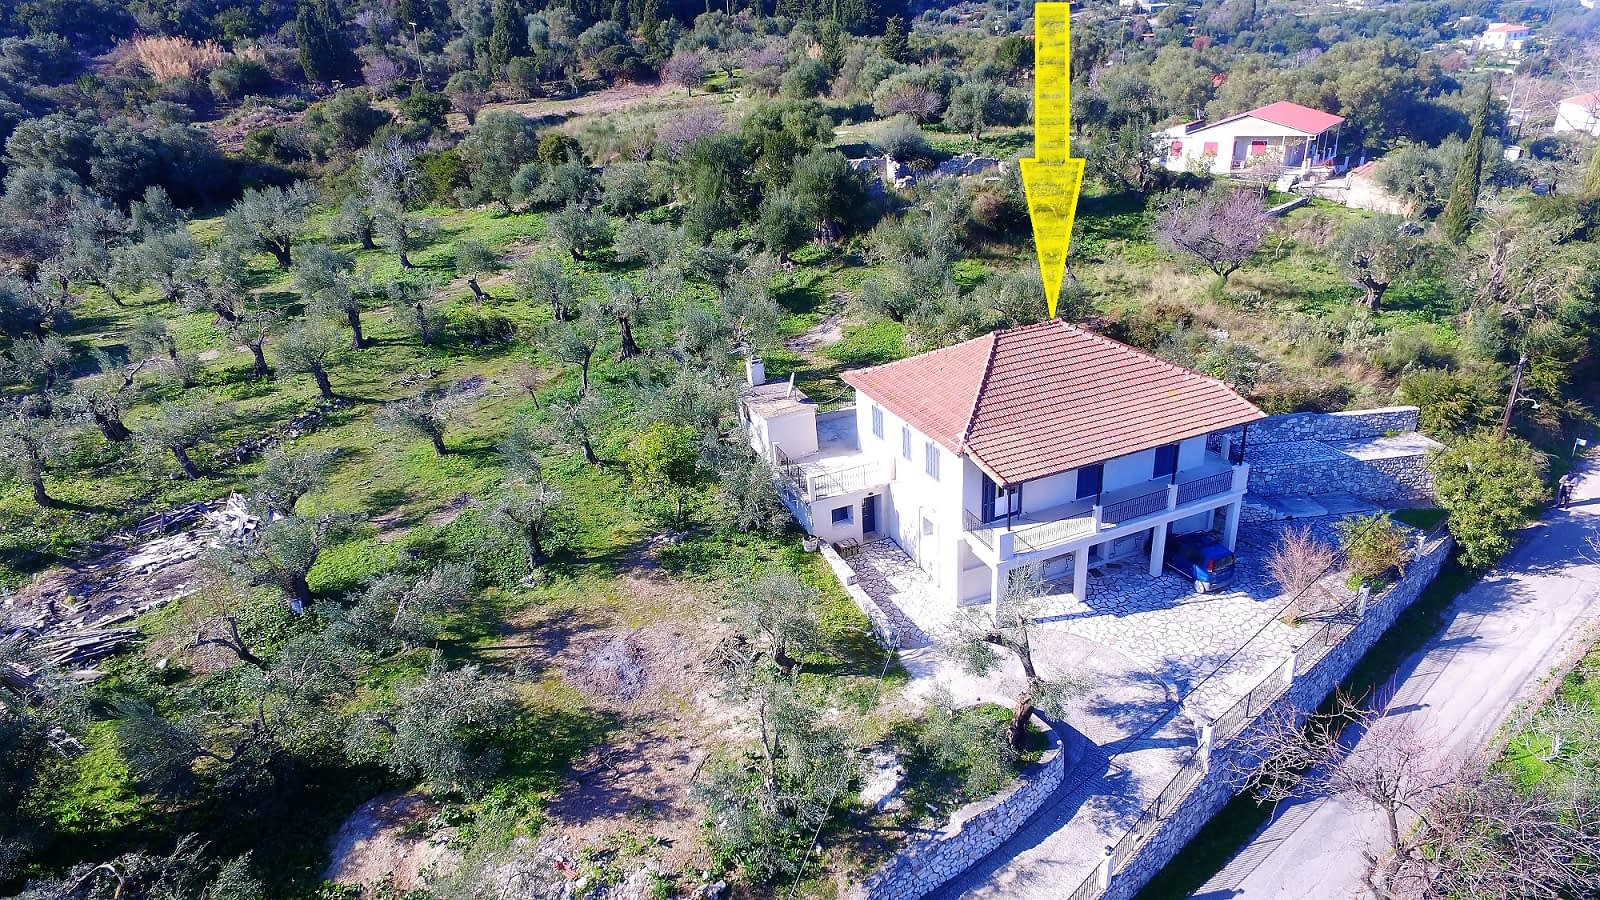 Aerial view of house for rent in Ithaca Greece, Kolleri